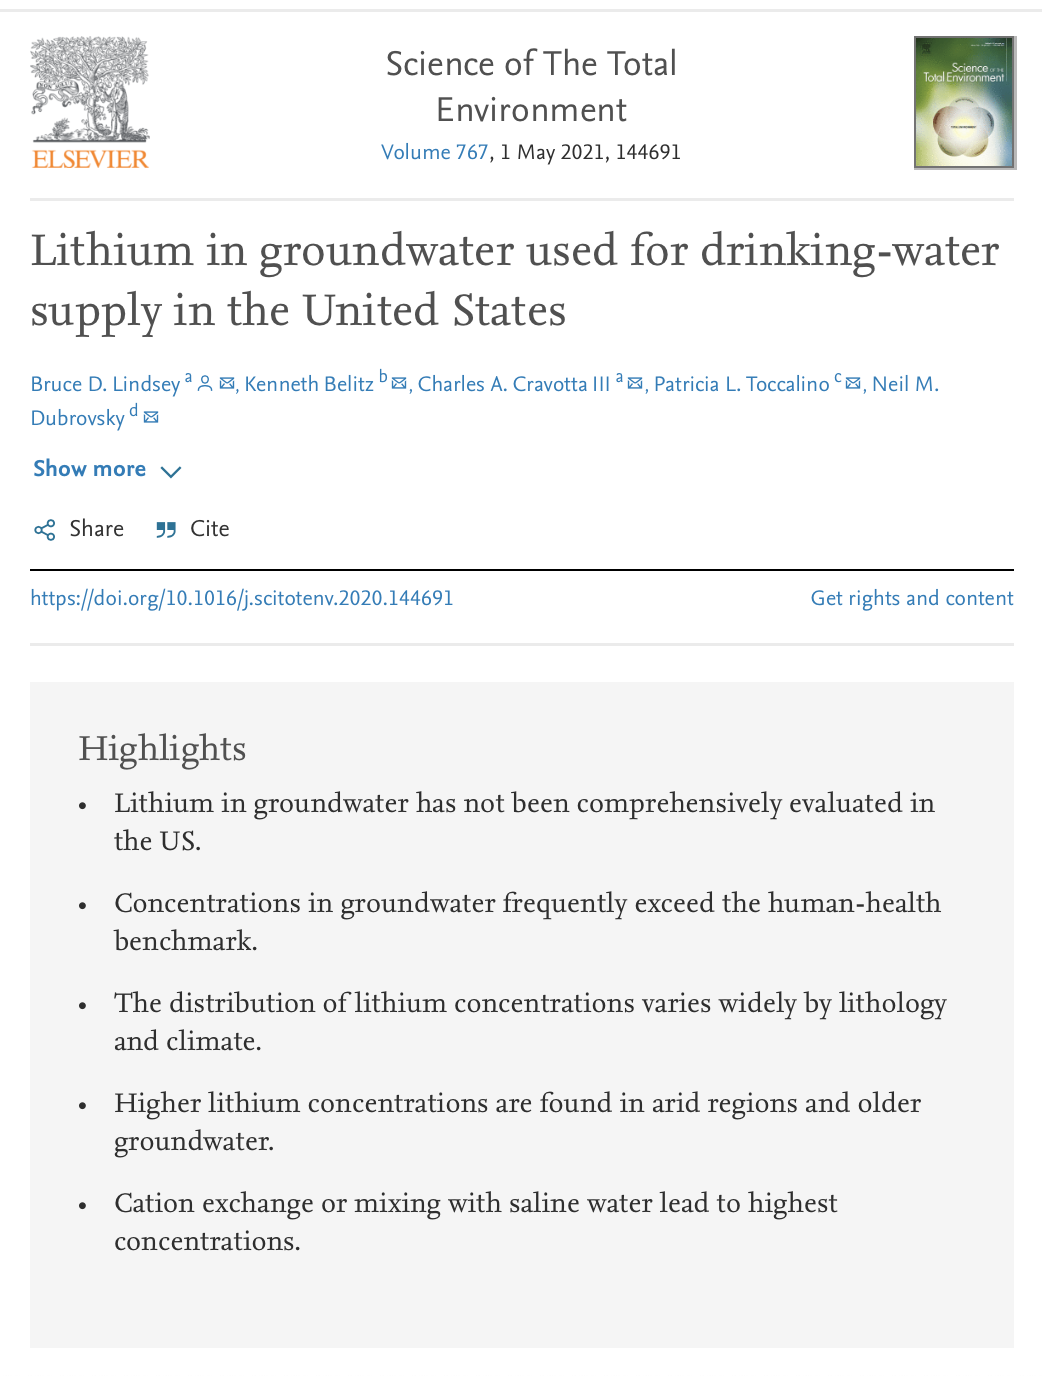 Lithium in groundwater used for drinking-water supply in the United States